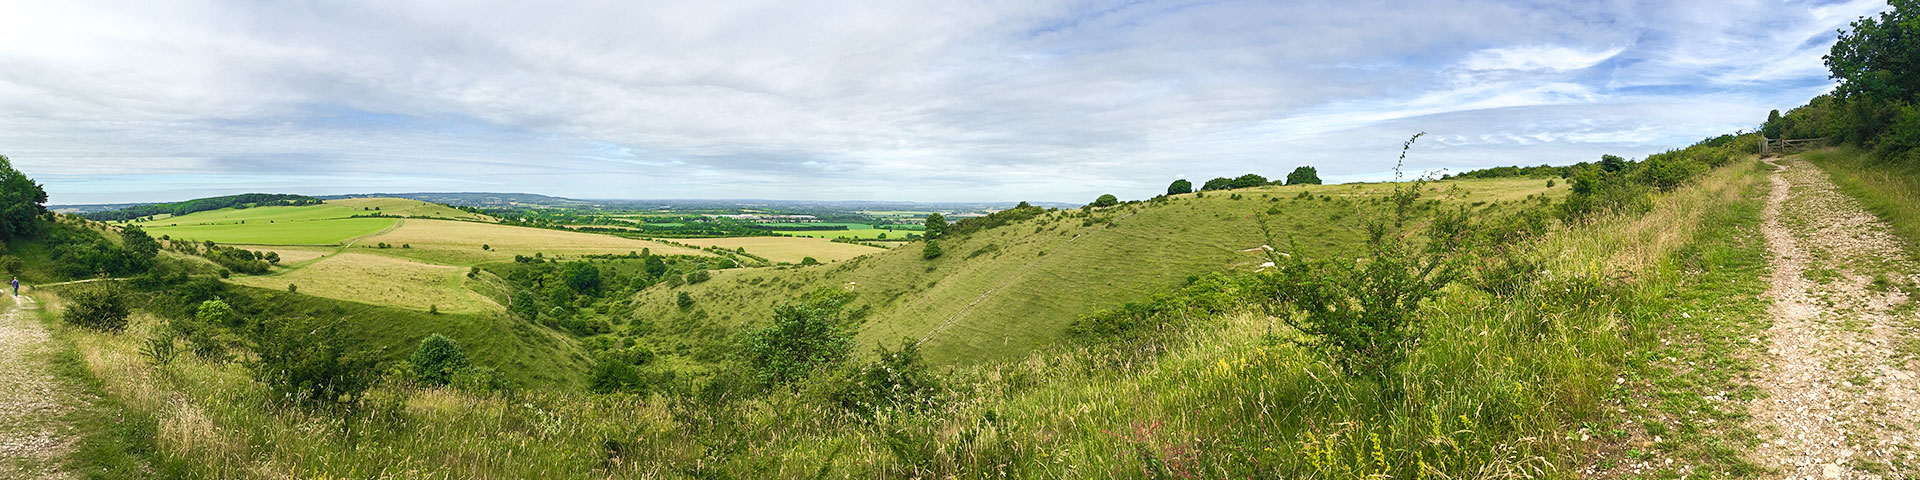 Panorama from the Ashridge Boundary Trail hike in Chiltern Hills, England